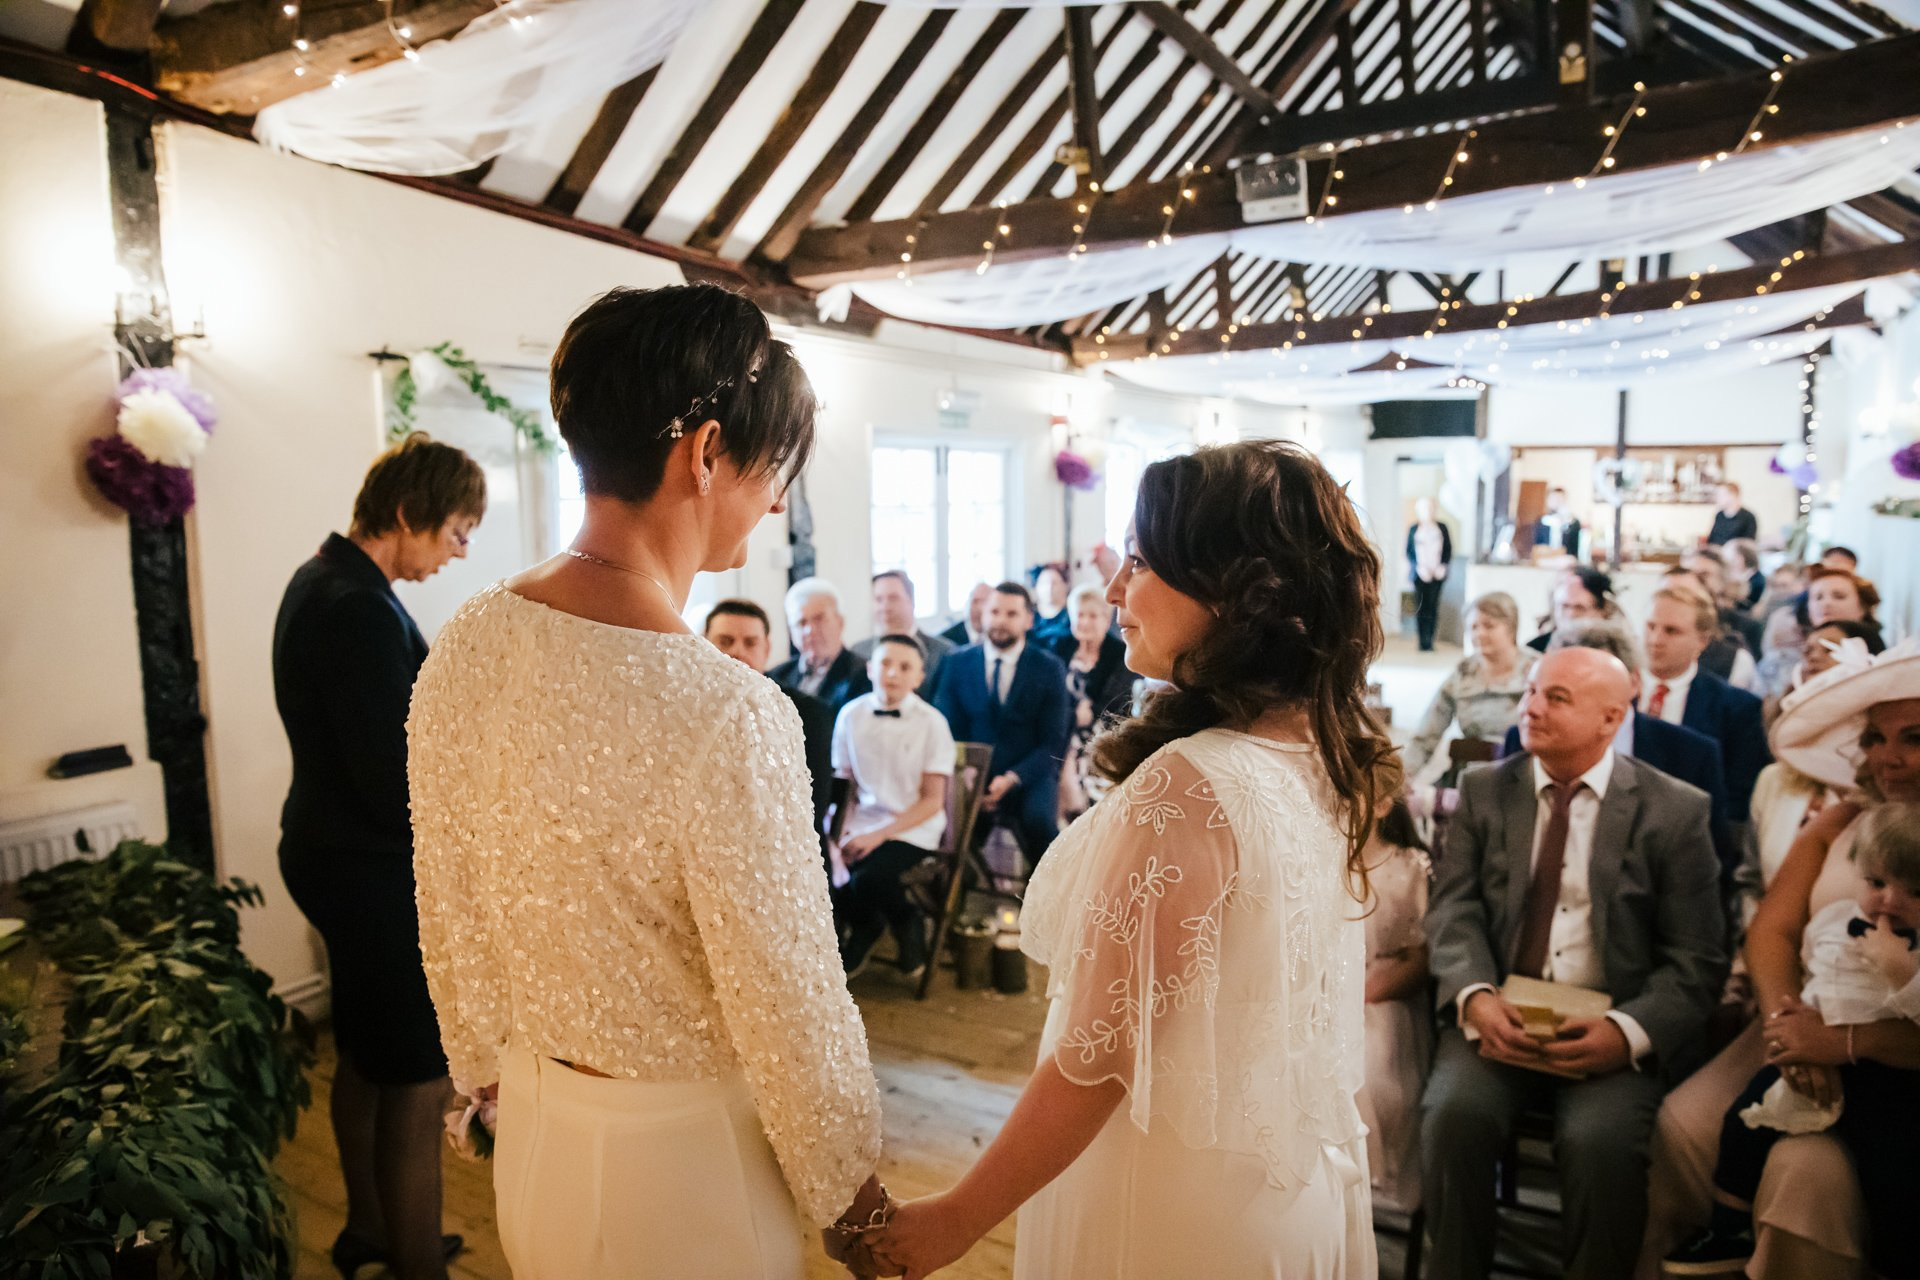 Two Brides together for the wedding ceremony at The Bull Hotel, Kent